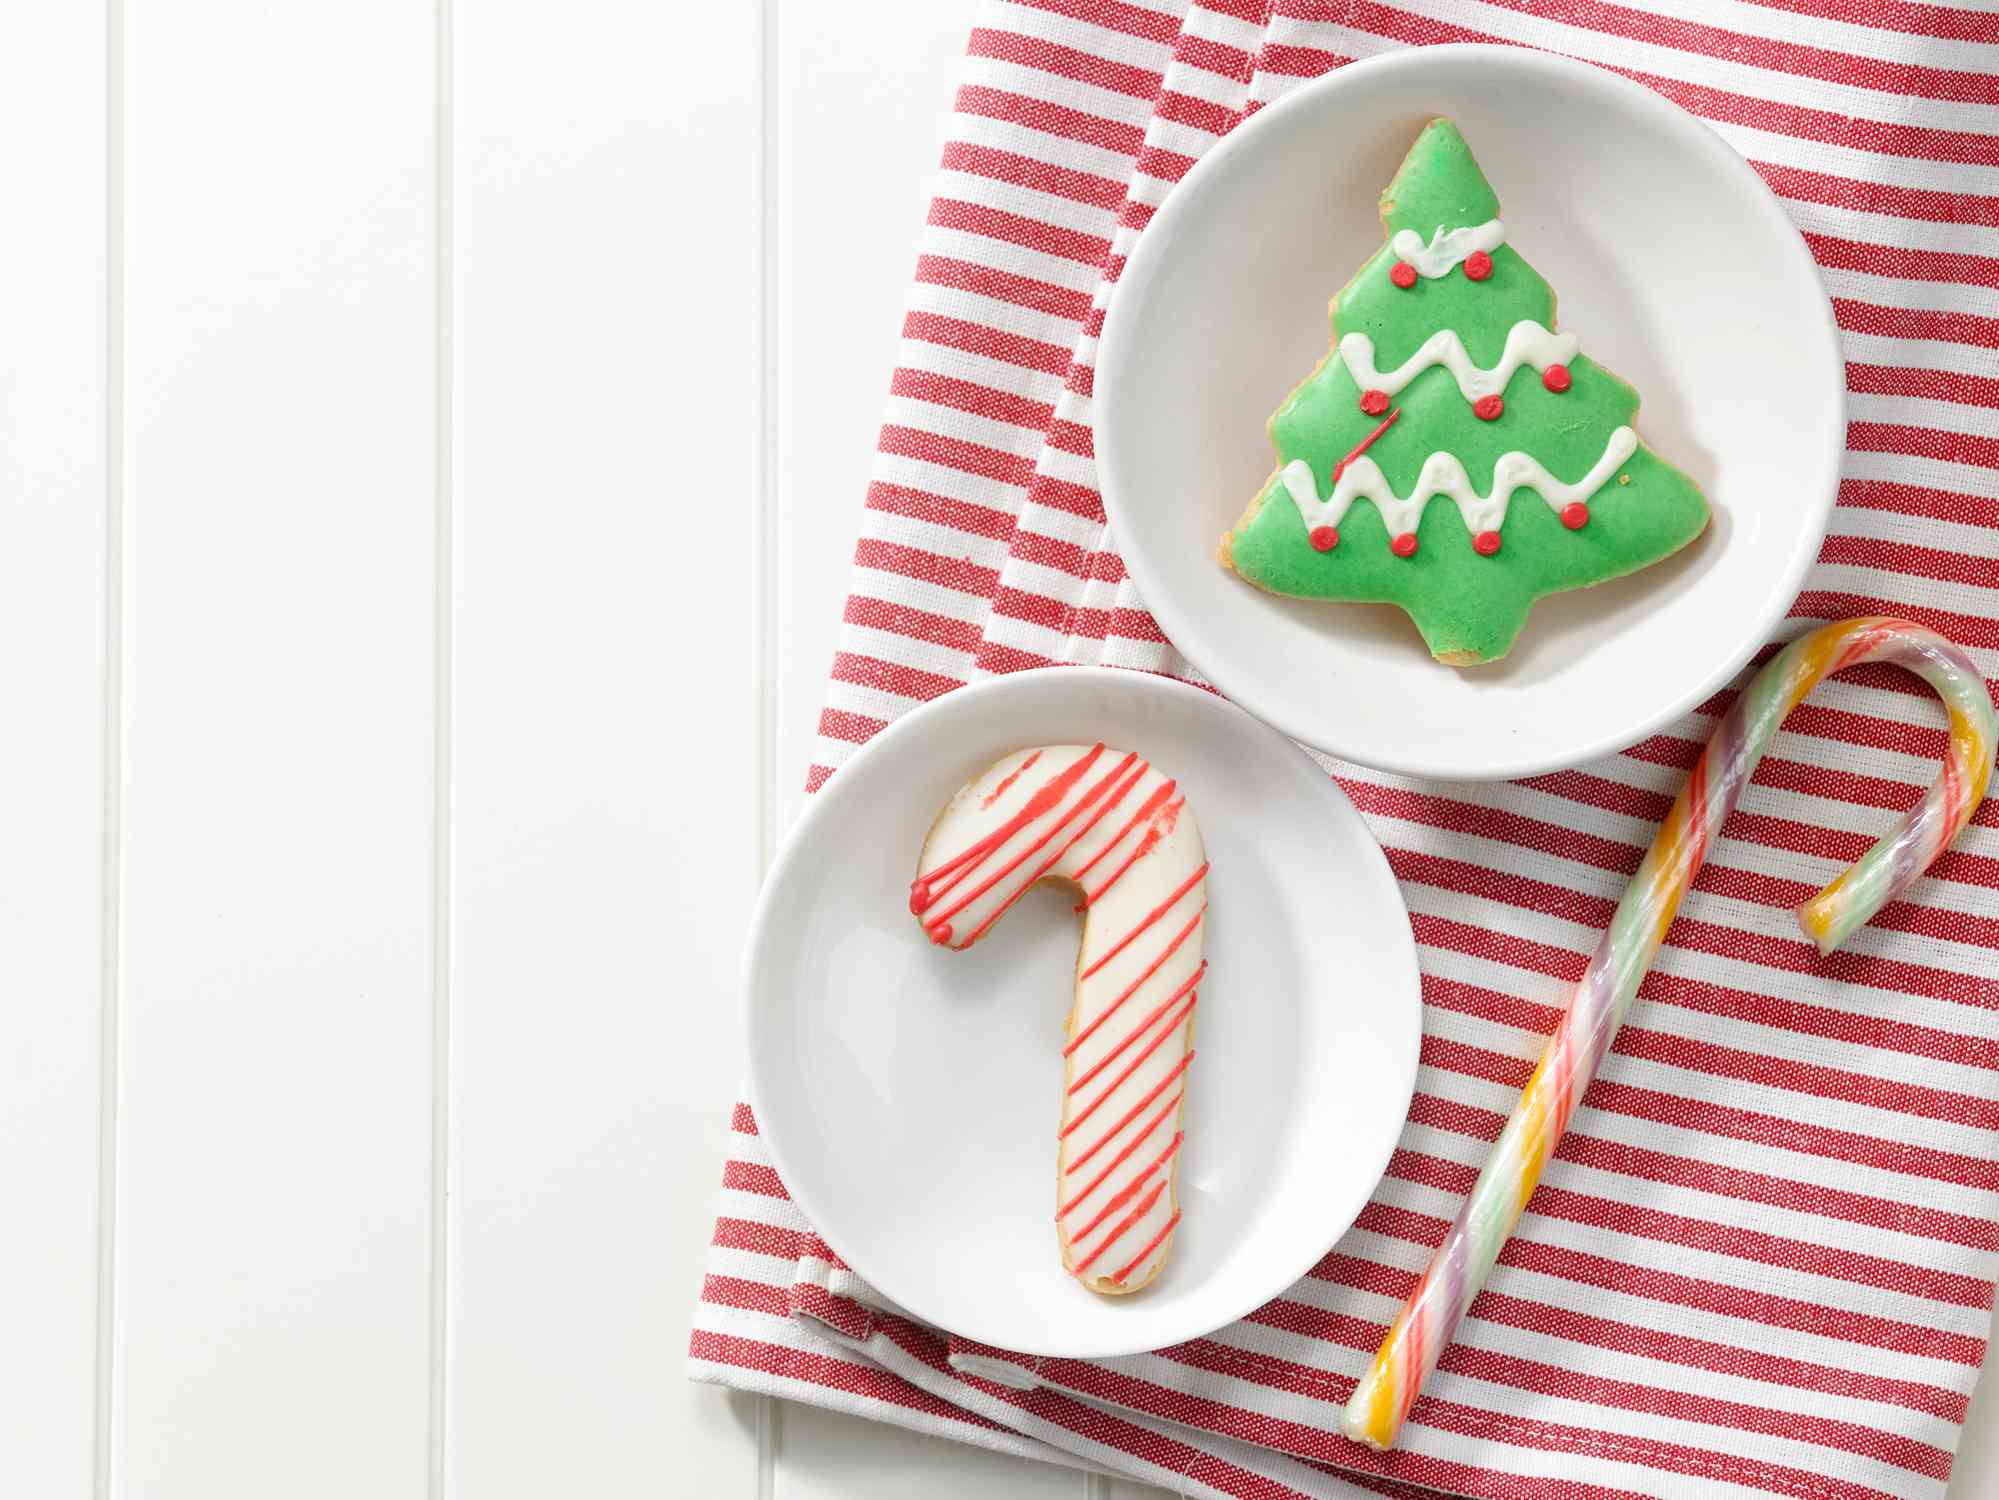 Directly Above Shot Of Cookies And Candy Cane With Napkin On Table